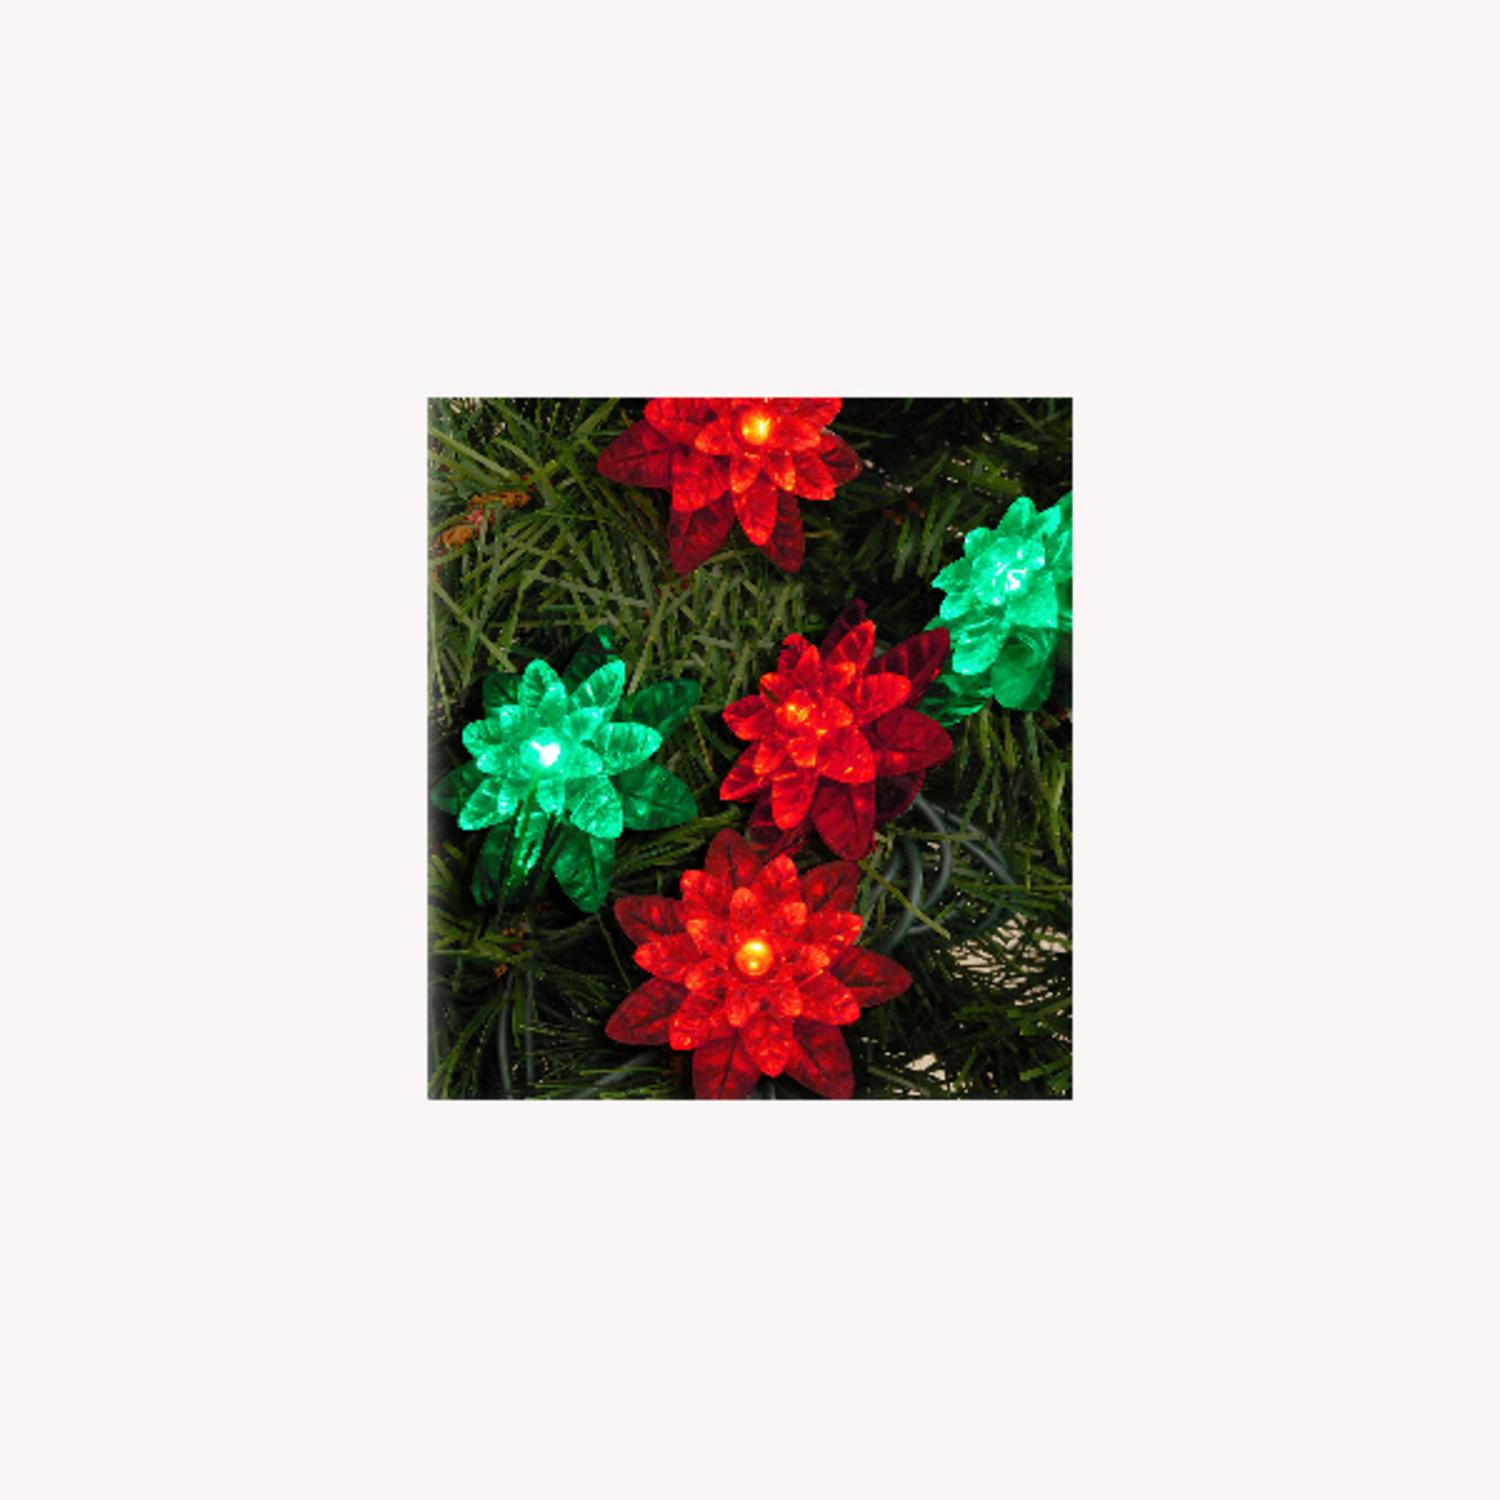 Set of 25 LED Red and Green Flower Petal Reflector Christmas Lights - Green Wire